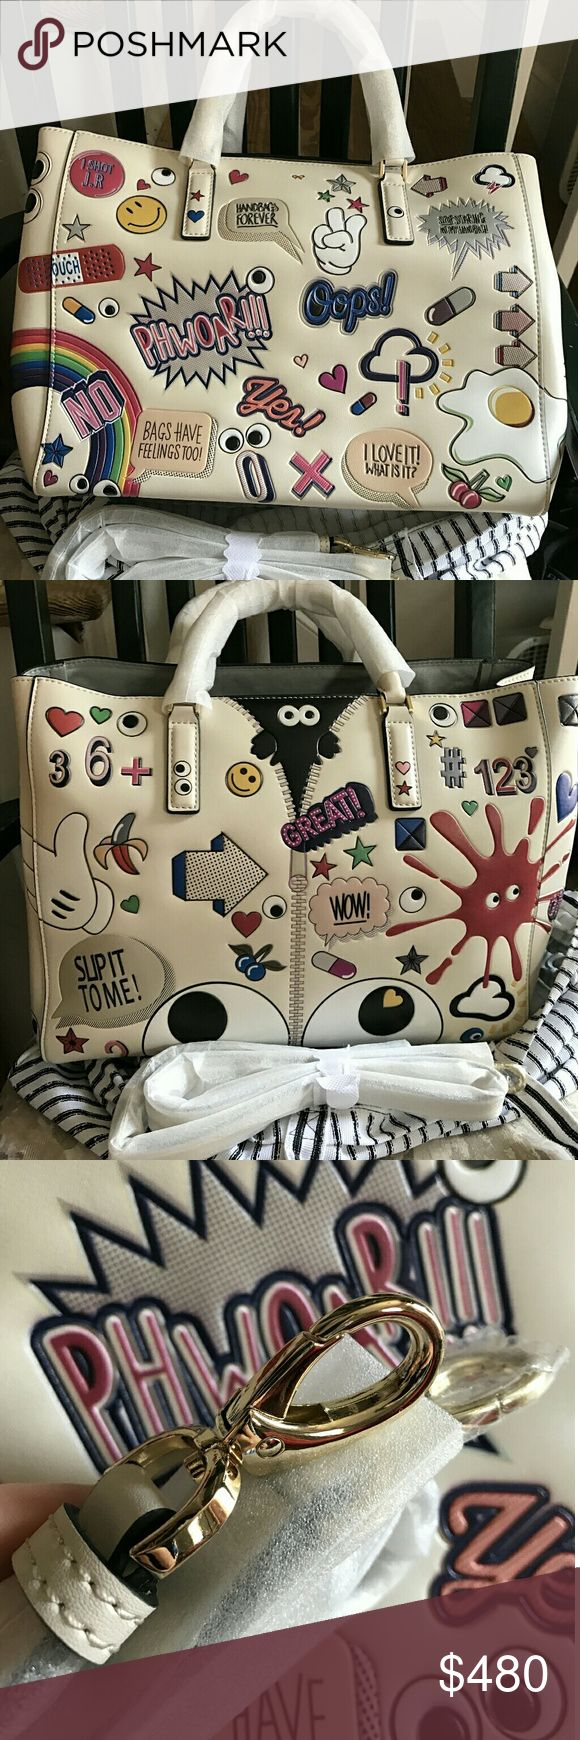 Sticker Anya hindmarch handbag New INSPIRED All leather! Solid hardware top quality Price firm once purchased ship next day  Great quality leather and gold hardwear With dust bag only  Thank you and enjoy! Anya Hindmarch Bags Totes